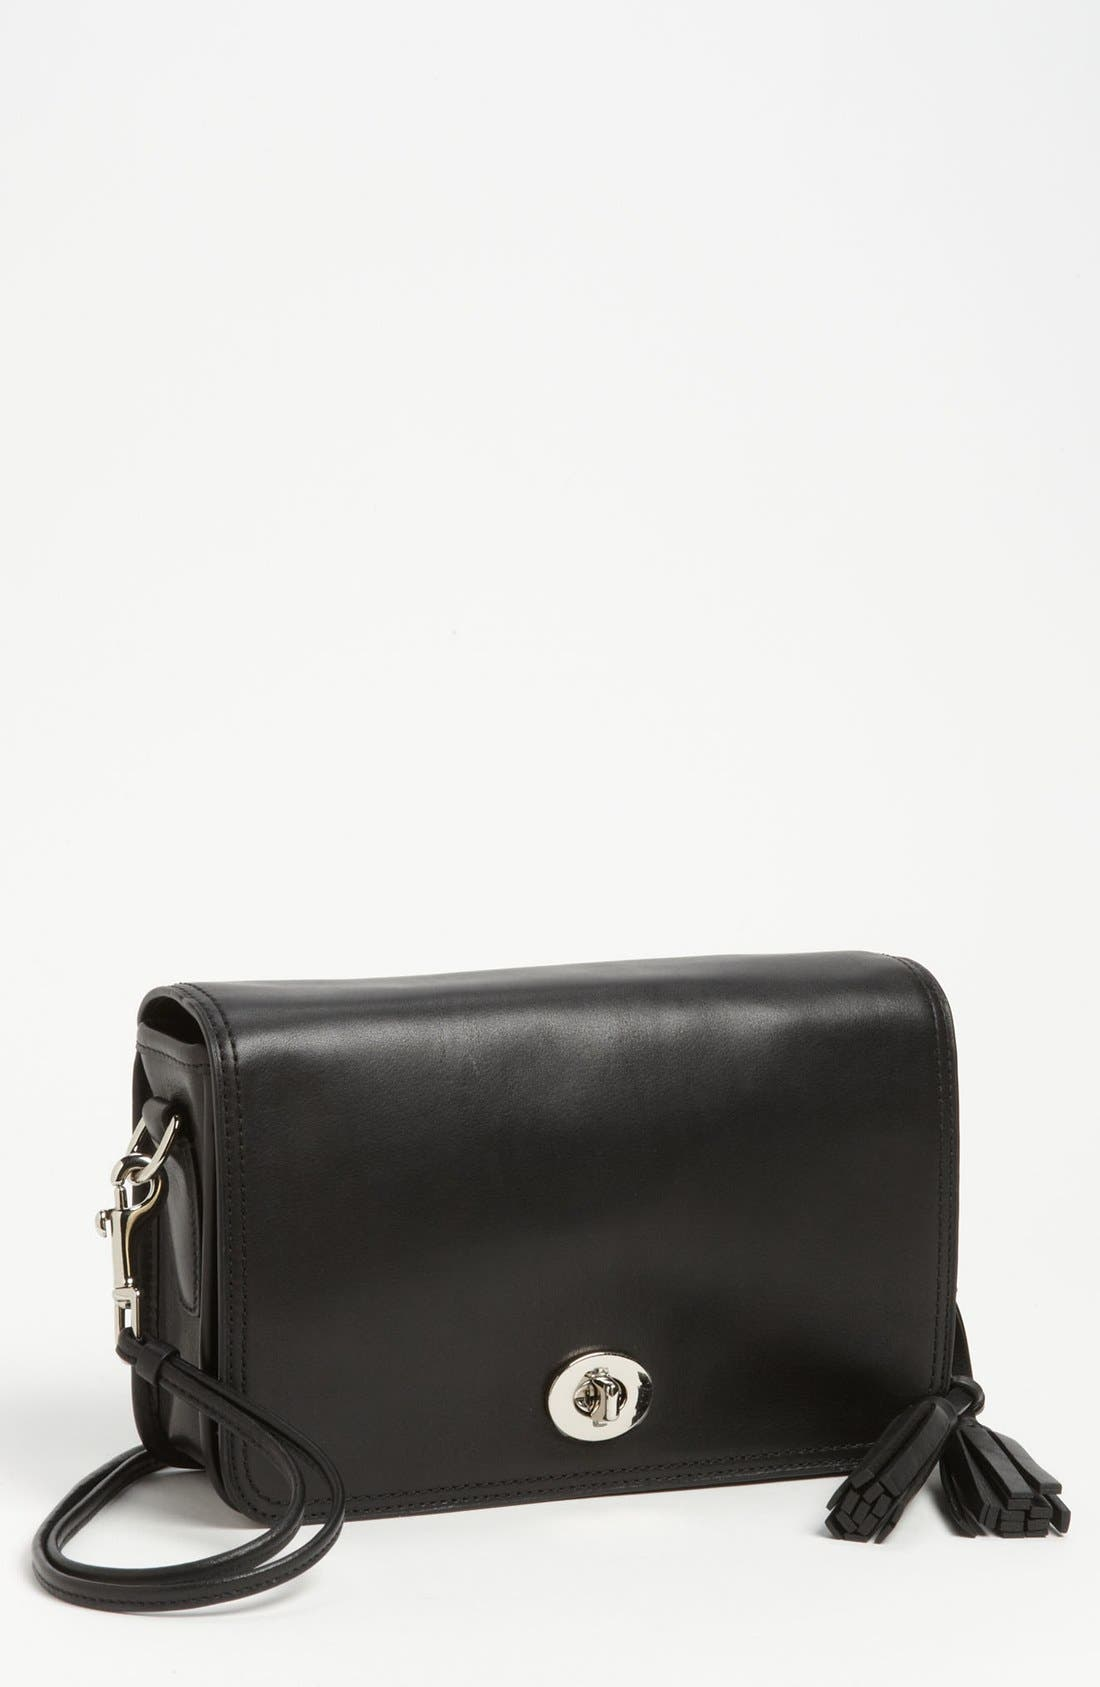 Main Image - COACH 'Legacy - Penelope' Leather Crossbody Bag